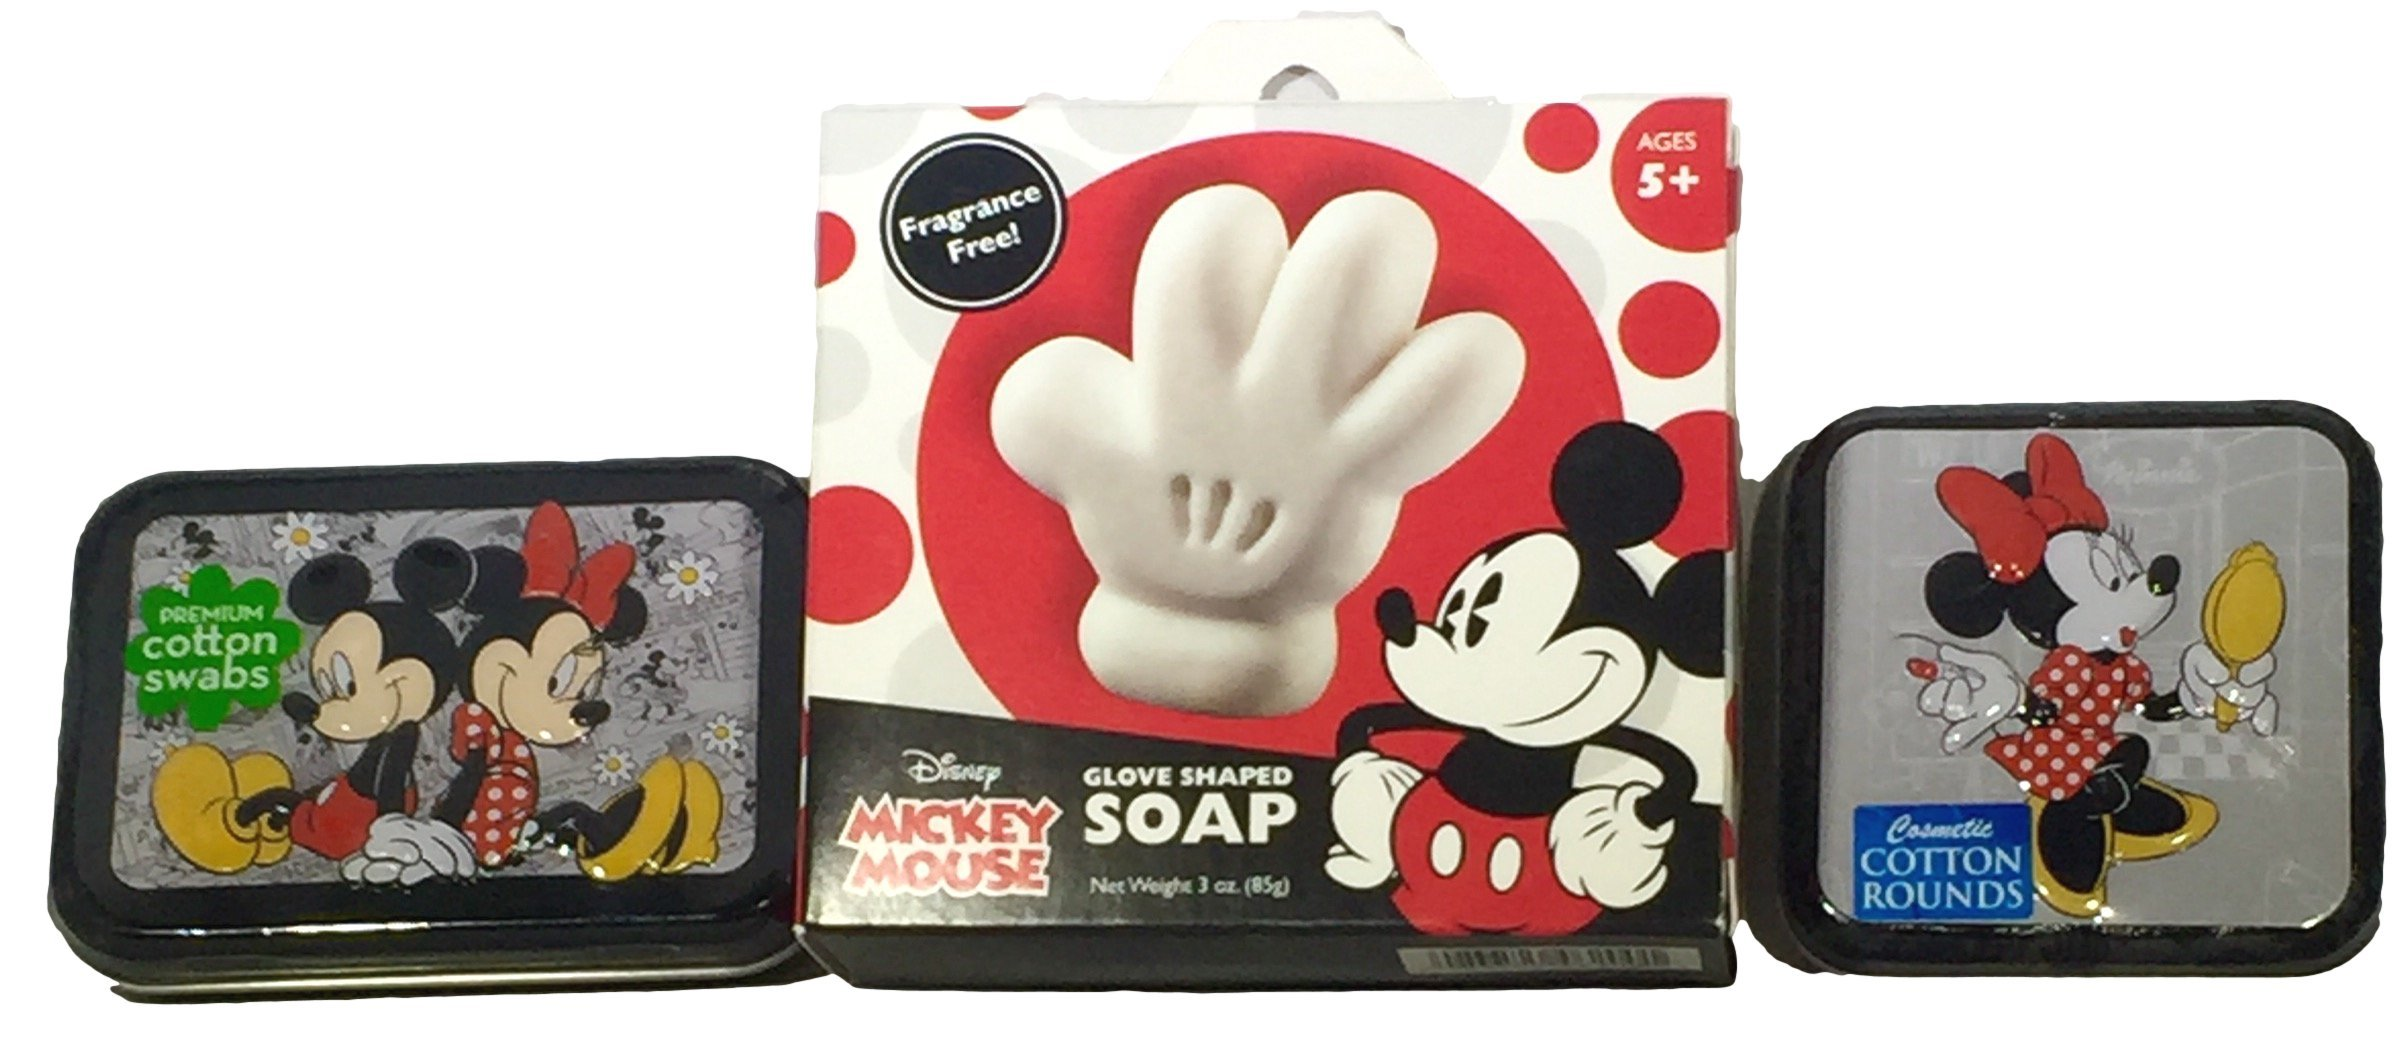 Disney Mickey and Minnie Mouse Soap and Cotton Swab Cosmetic Cotton Round Set Collectible Tins